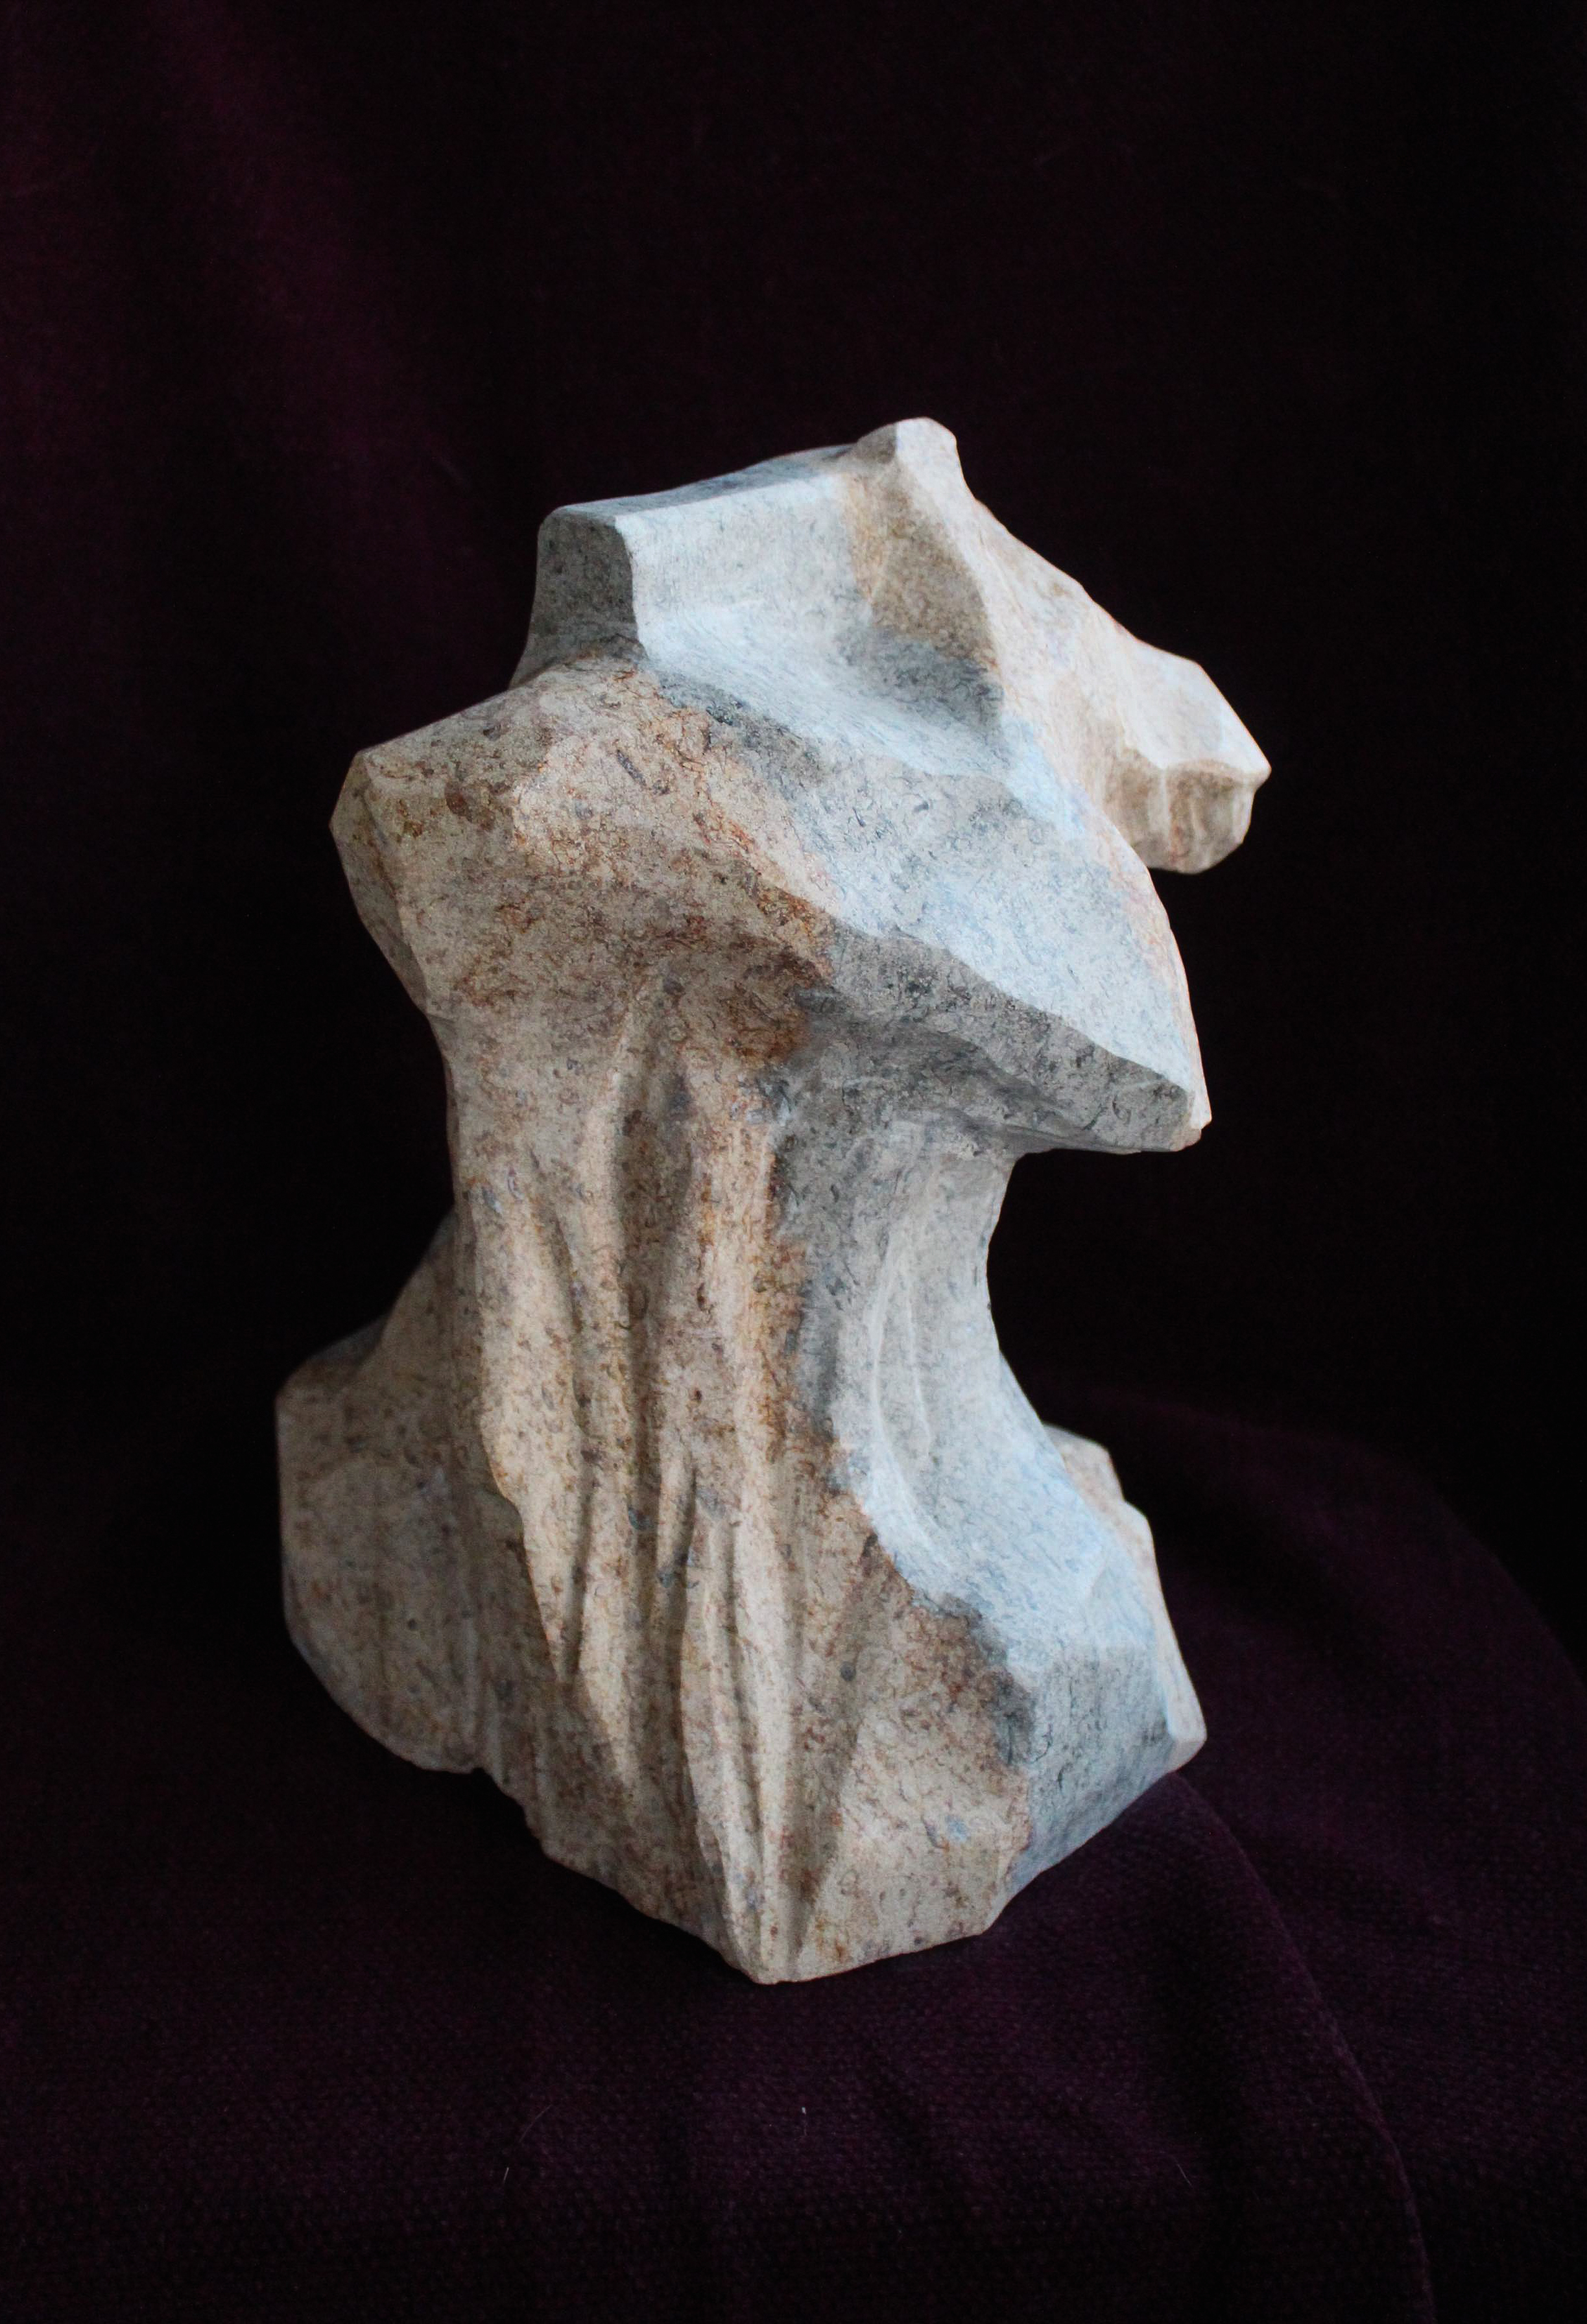 Longing,  Carved natural stone, Rory Cannon